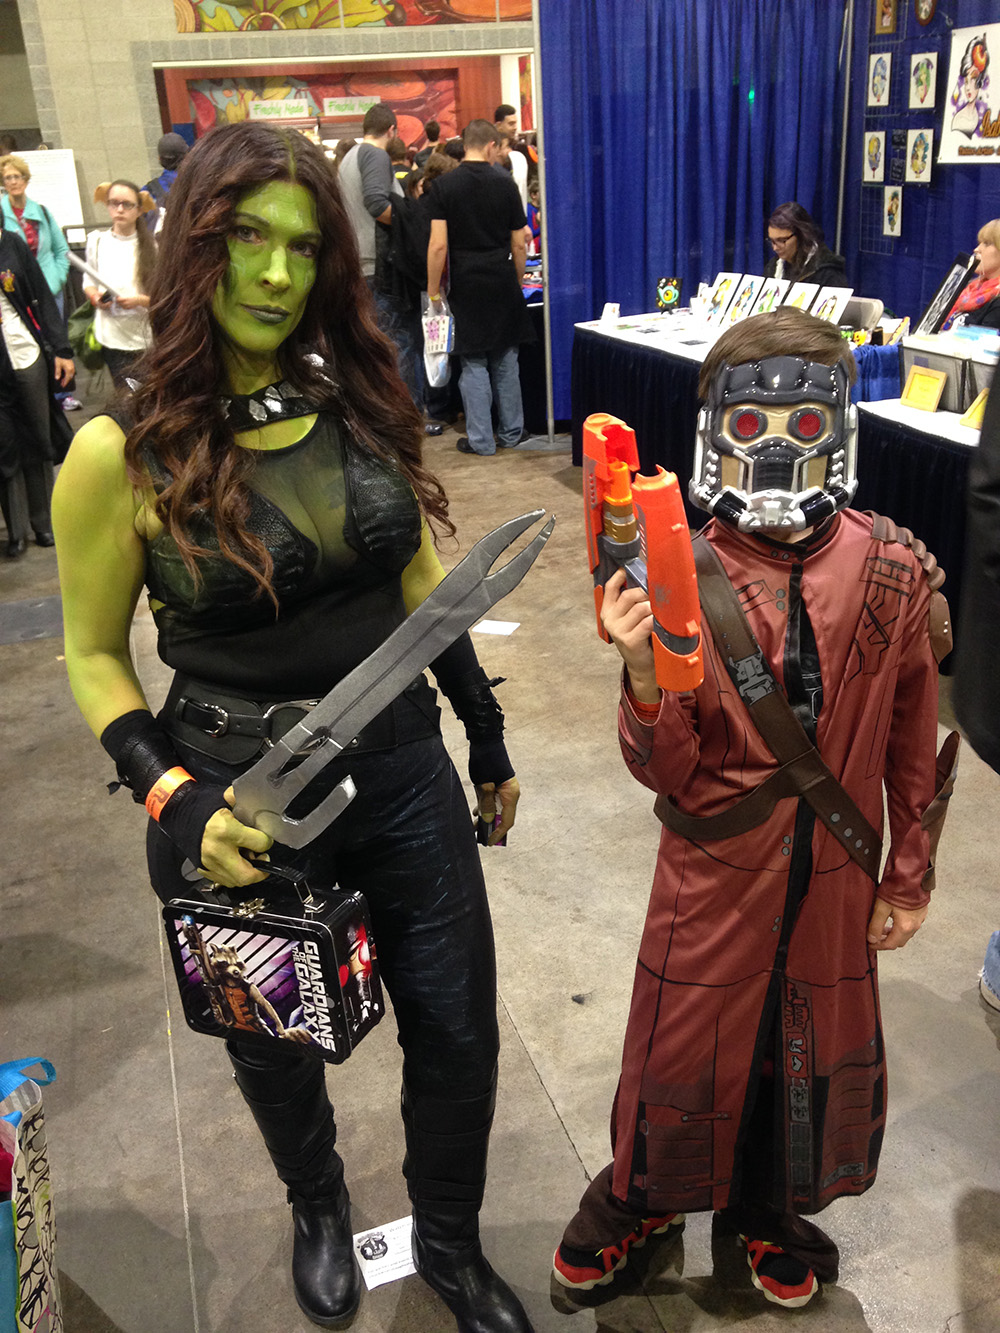 Zom Tailor Rhode Island Comic Con 2014 In Pictures | Aipt!